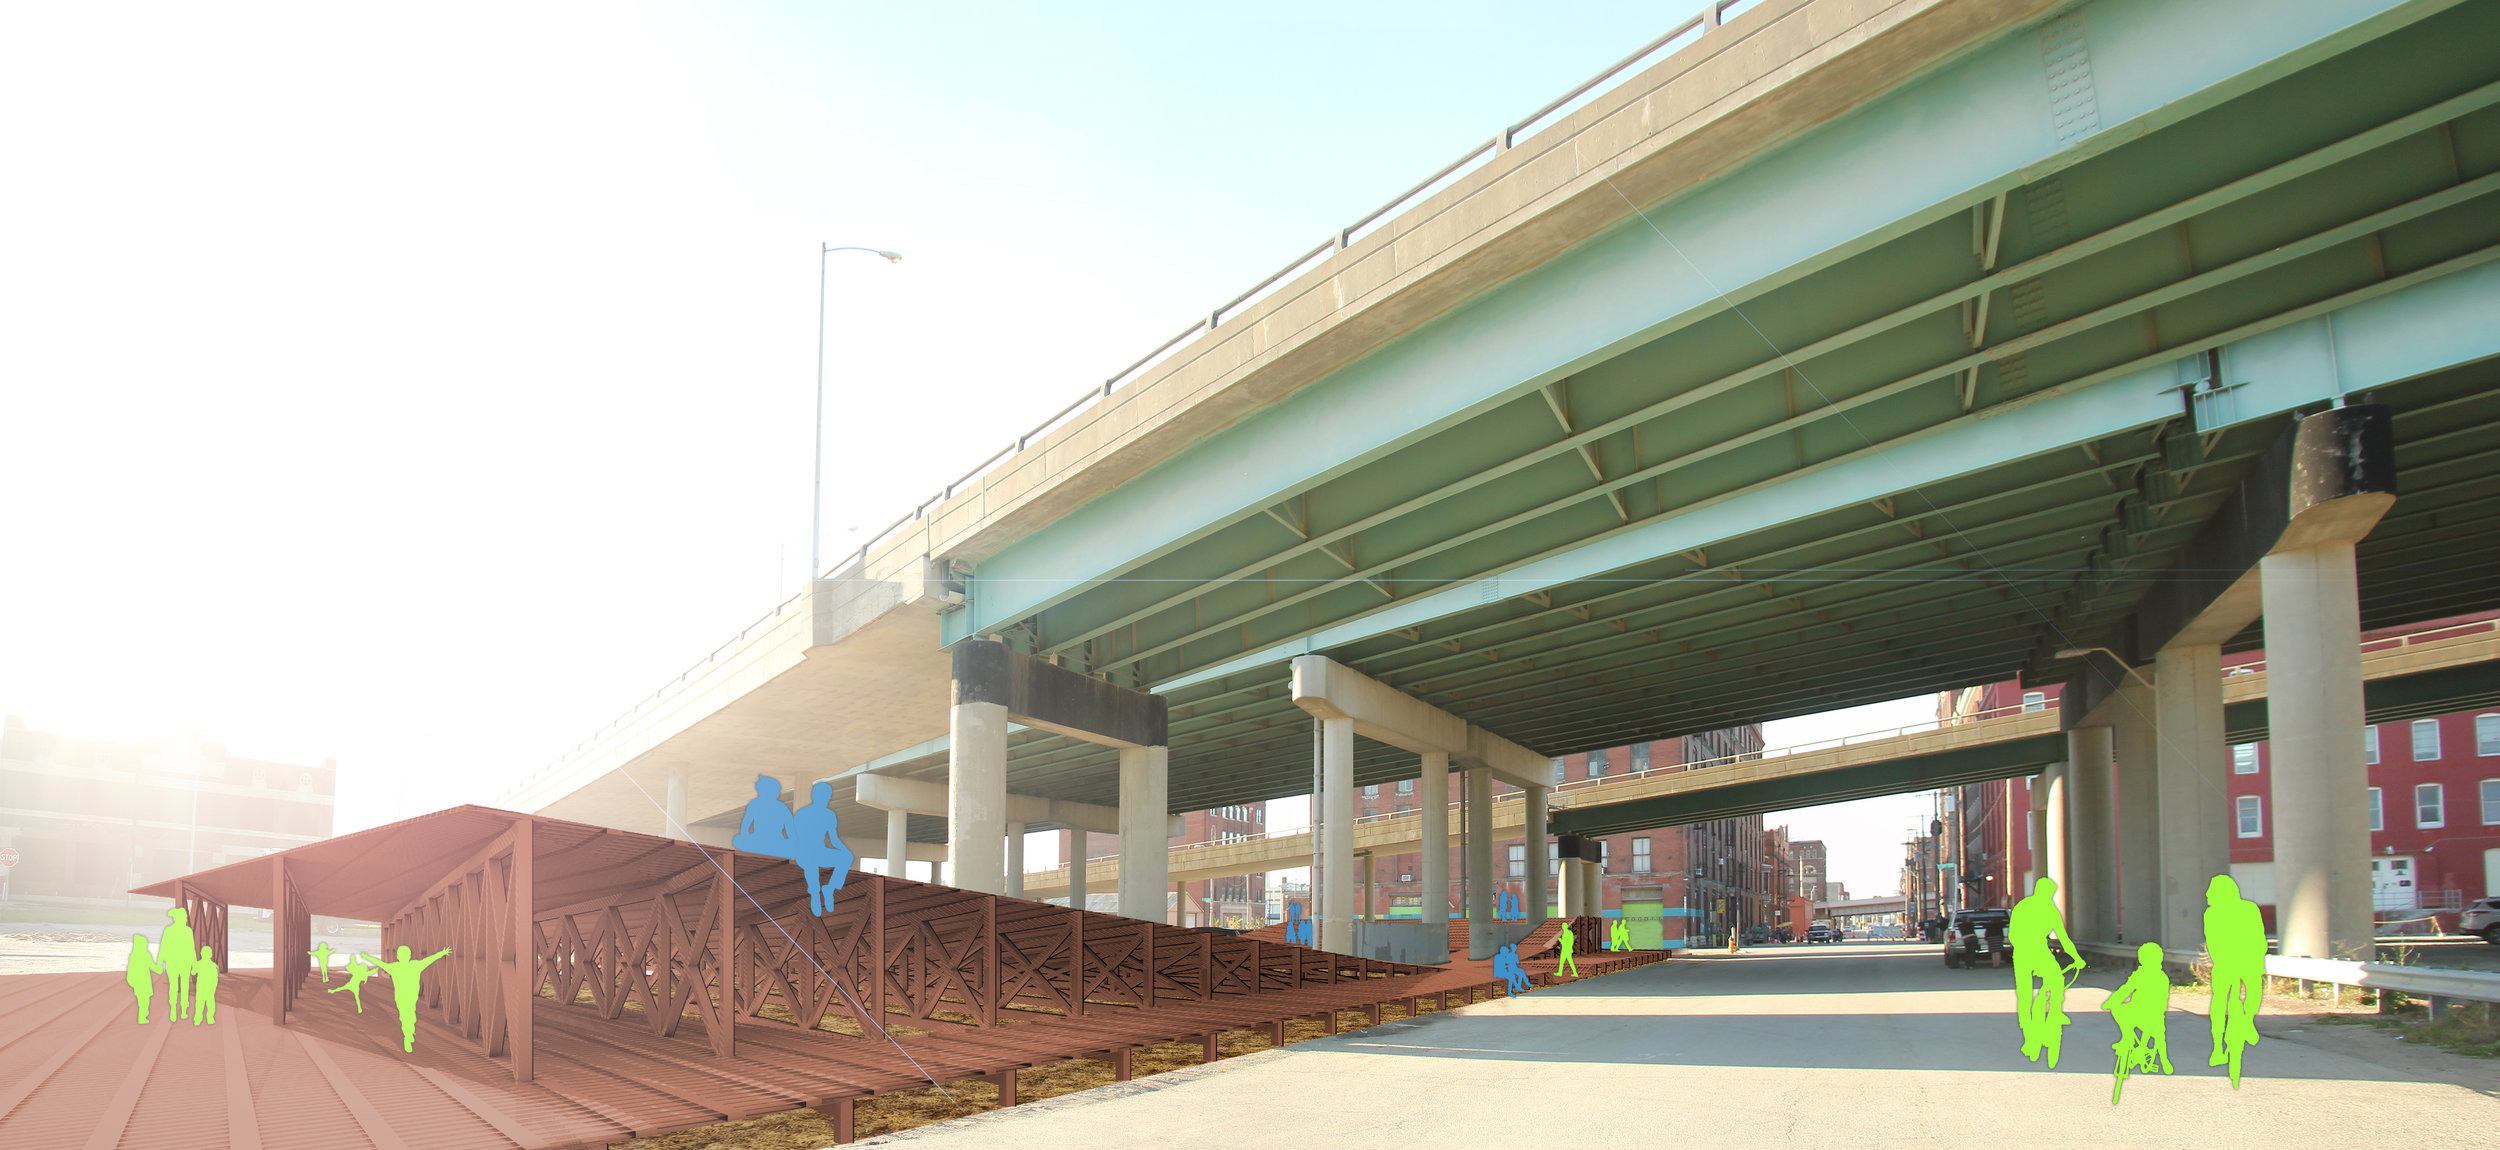 The design for the I-670 viaduct site gives purpose to the otherwise barren spaces underneath the highway viaducts. this dead space currently acts as a wall between the Historic Core and the Stockyards District. a public space can transform this wall condition into a threshold condition.